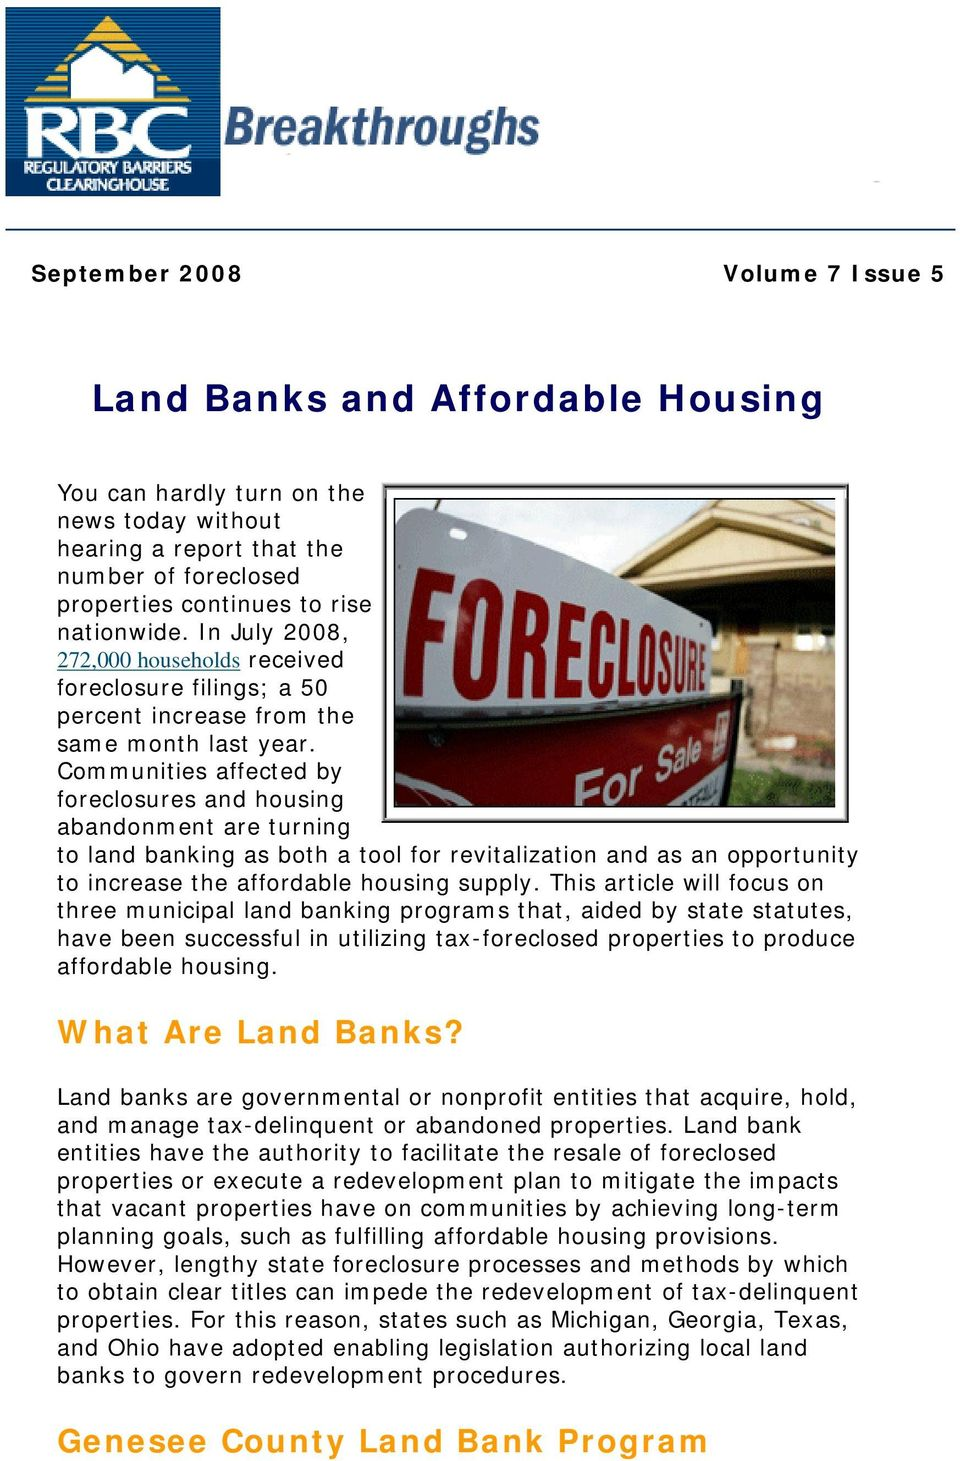 Communities affected by foreclosures and housing abandonment are turning to land banking as both a tool for revitalization and as an opportunity to increase the affordable housing supply.